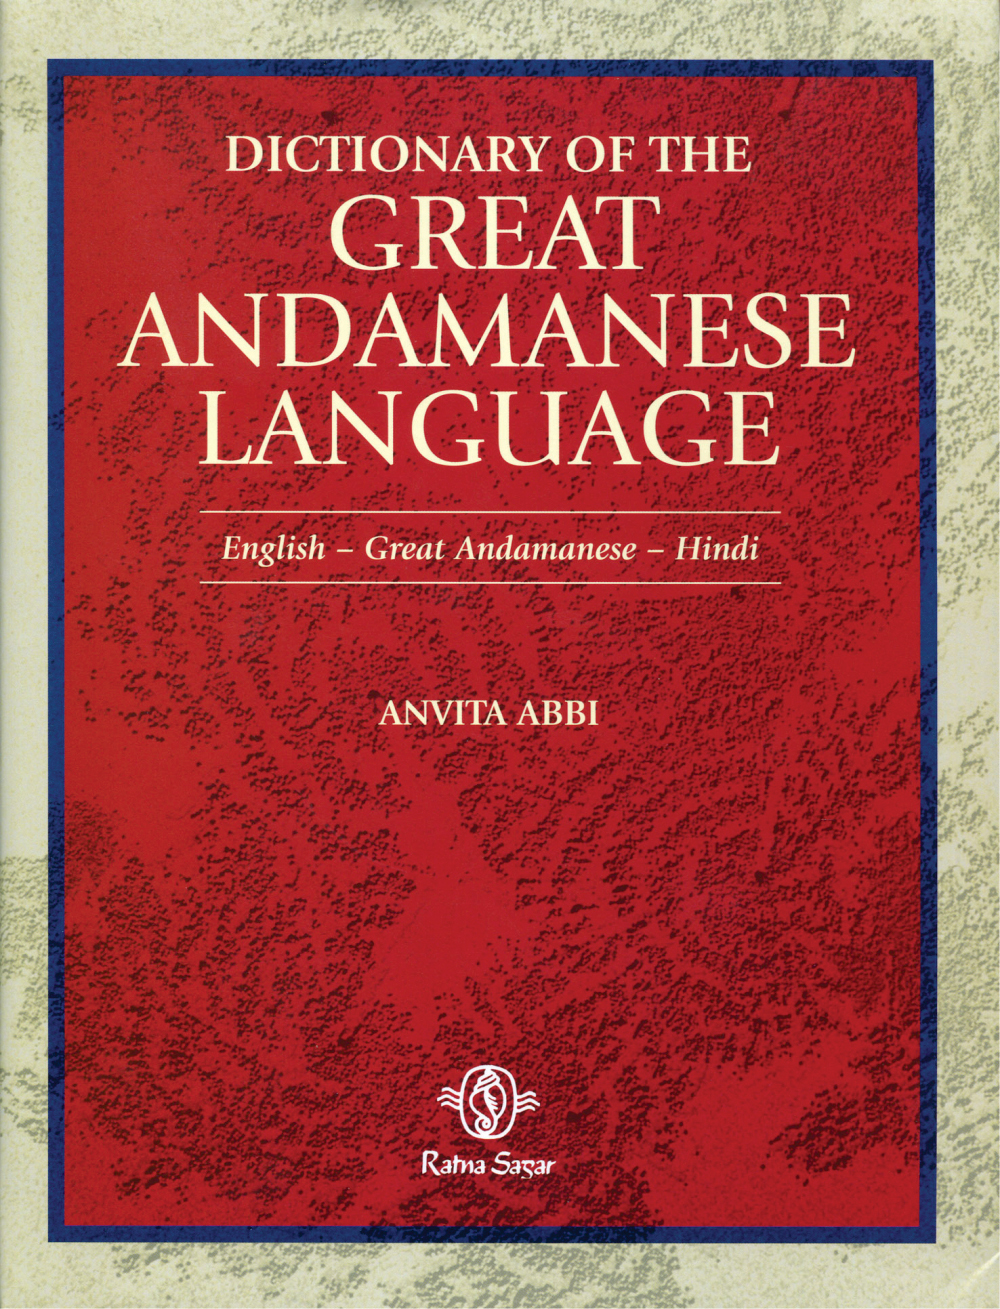 A Dictionary of the Great Andamanese Language